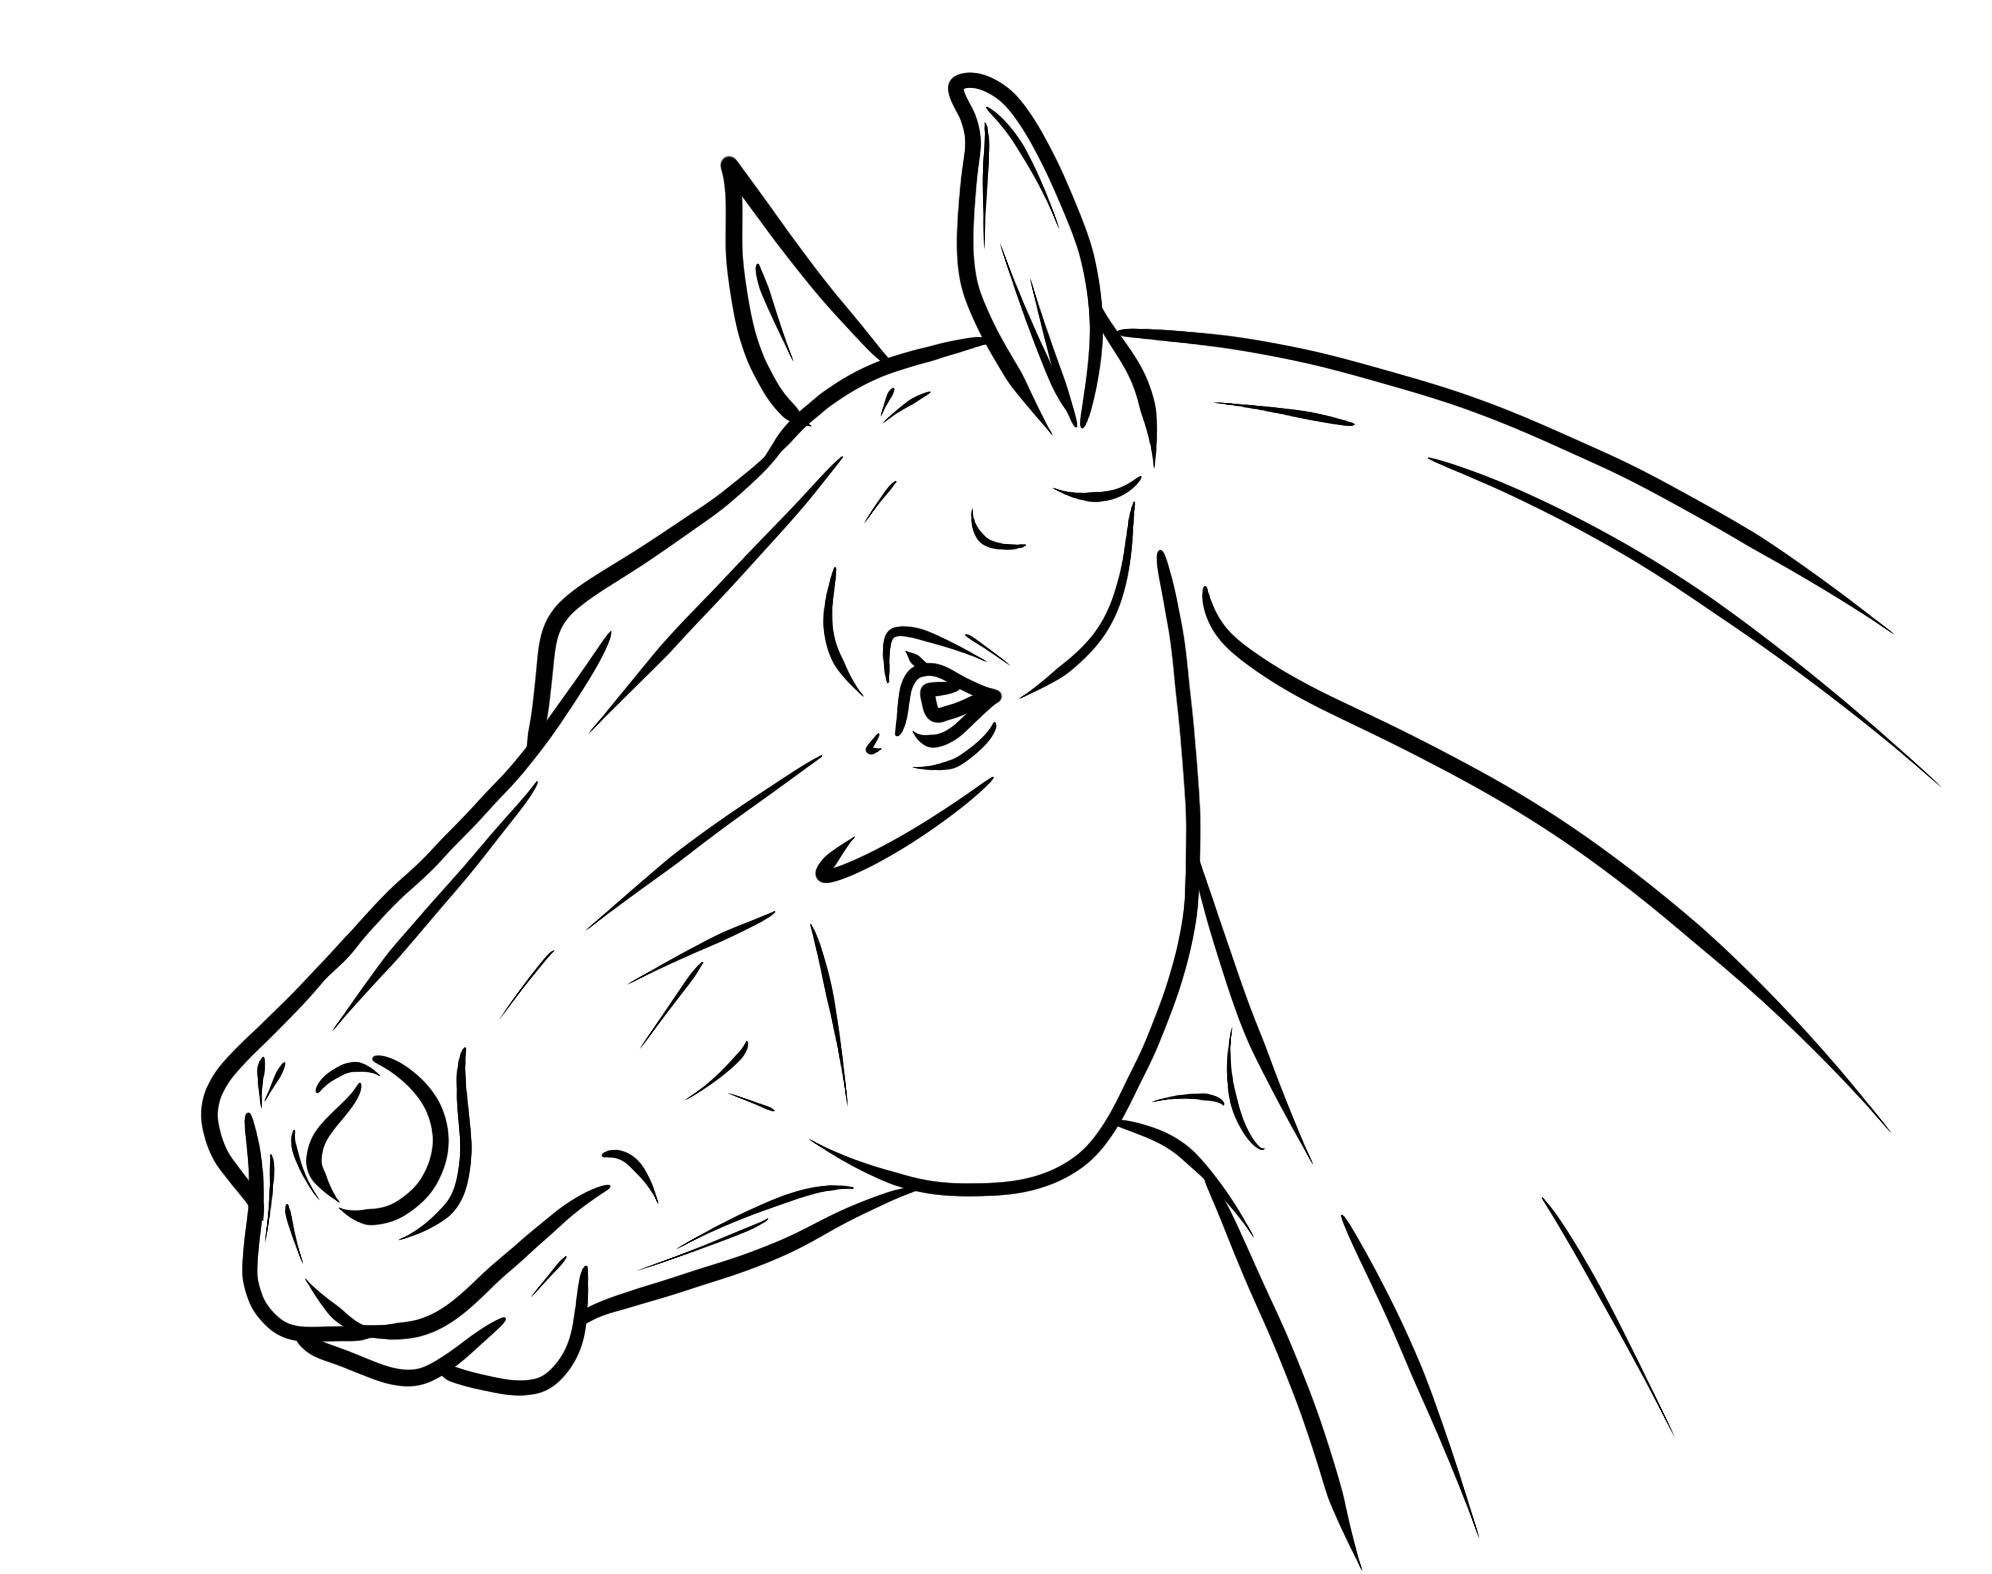 Horse Heads Google Search Horse Coloring Pages Horse Drawings Horse Head Drawing